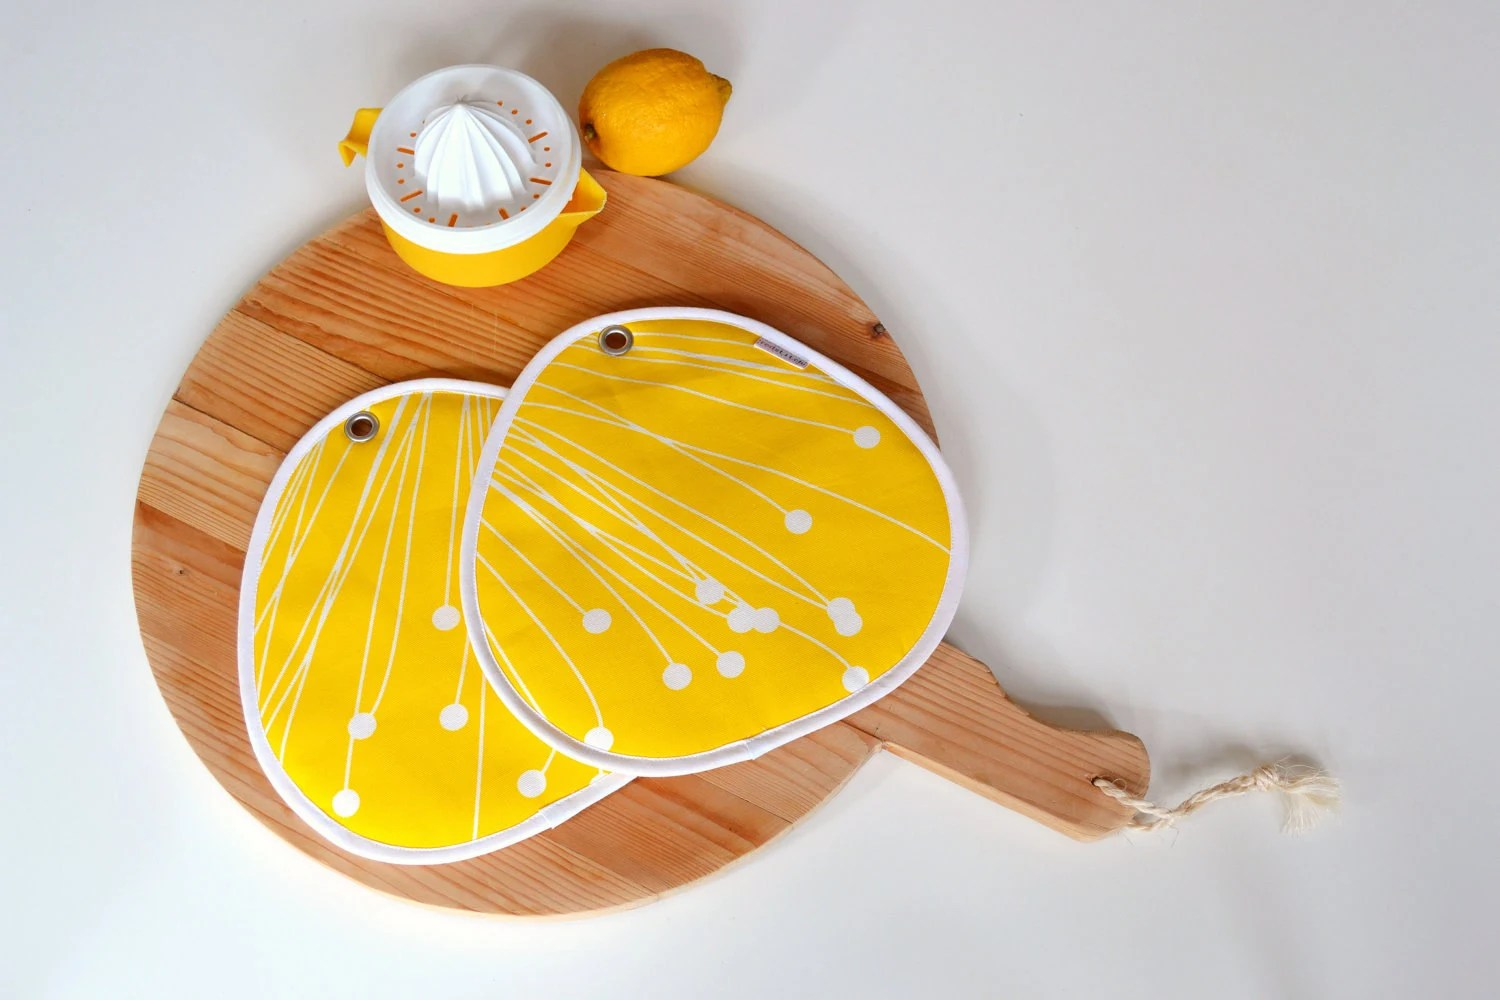 zesty mod kitchen bright yellow and white pair of potholders - large and thick - xxxRedStitcHxxx